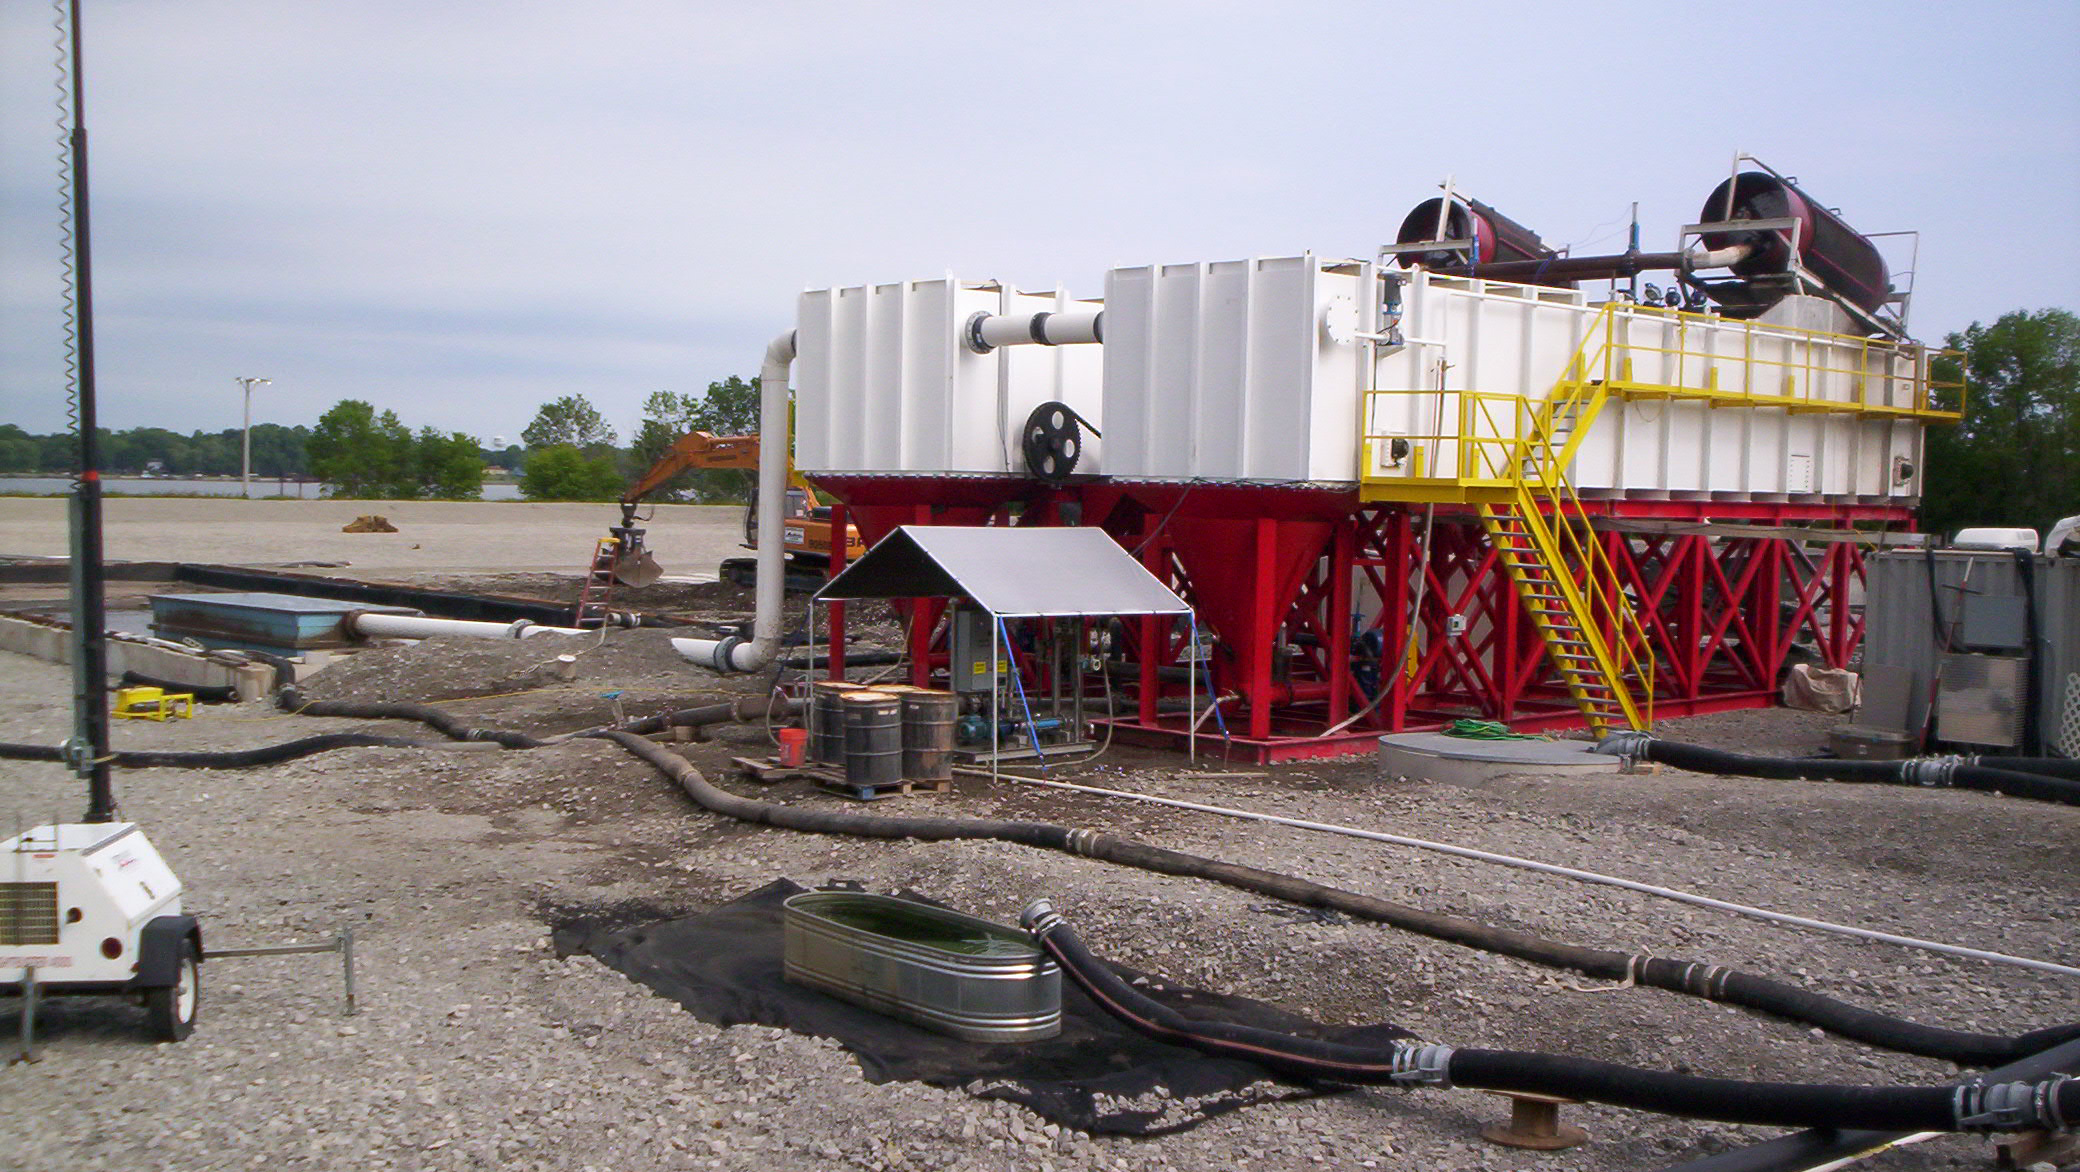 Two large industrial rectangular clarifiers at a dredging job site.